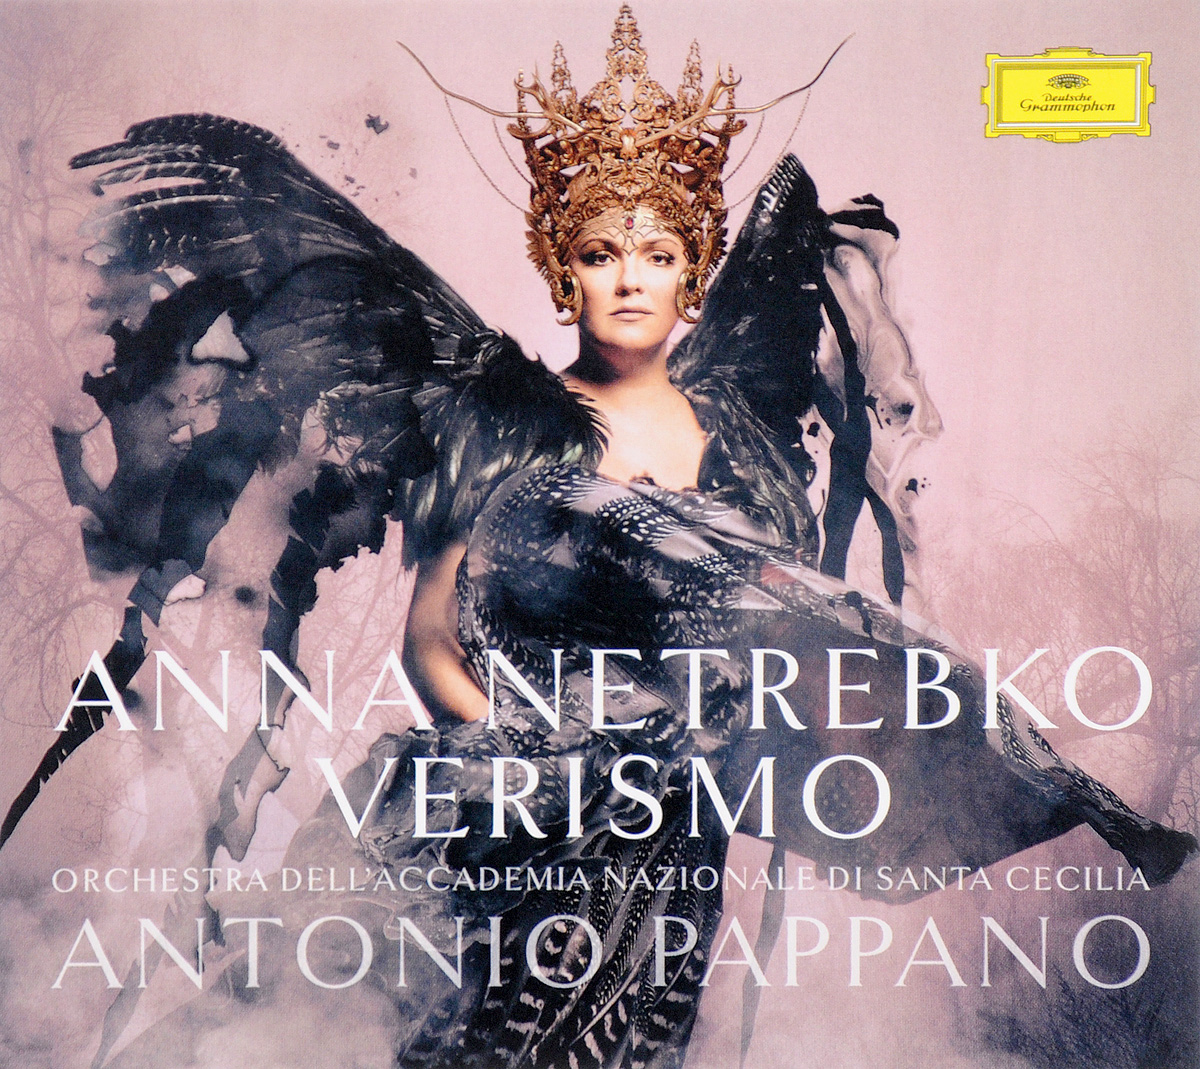 Анна Нетребко,Антонио Паппано,Coro Dell'Accademia Nazionale Di Santa Cecilia,Orchestra Dell'Accademia Nazionale Di Santa Cecilia Anna Netrebko, Antonio Pappano. Verismo. Limited Edition (CD + DVD) air air the vigin suicides limited edition 2 cd 3 lp